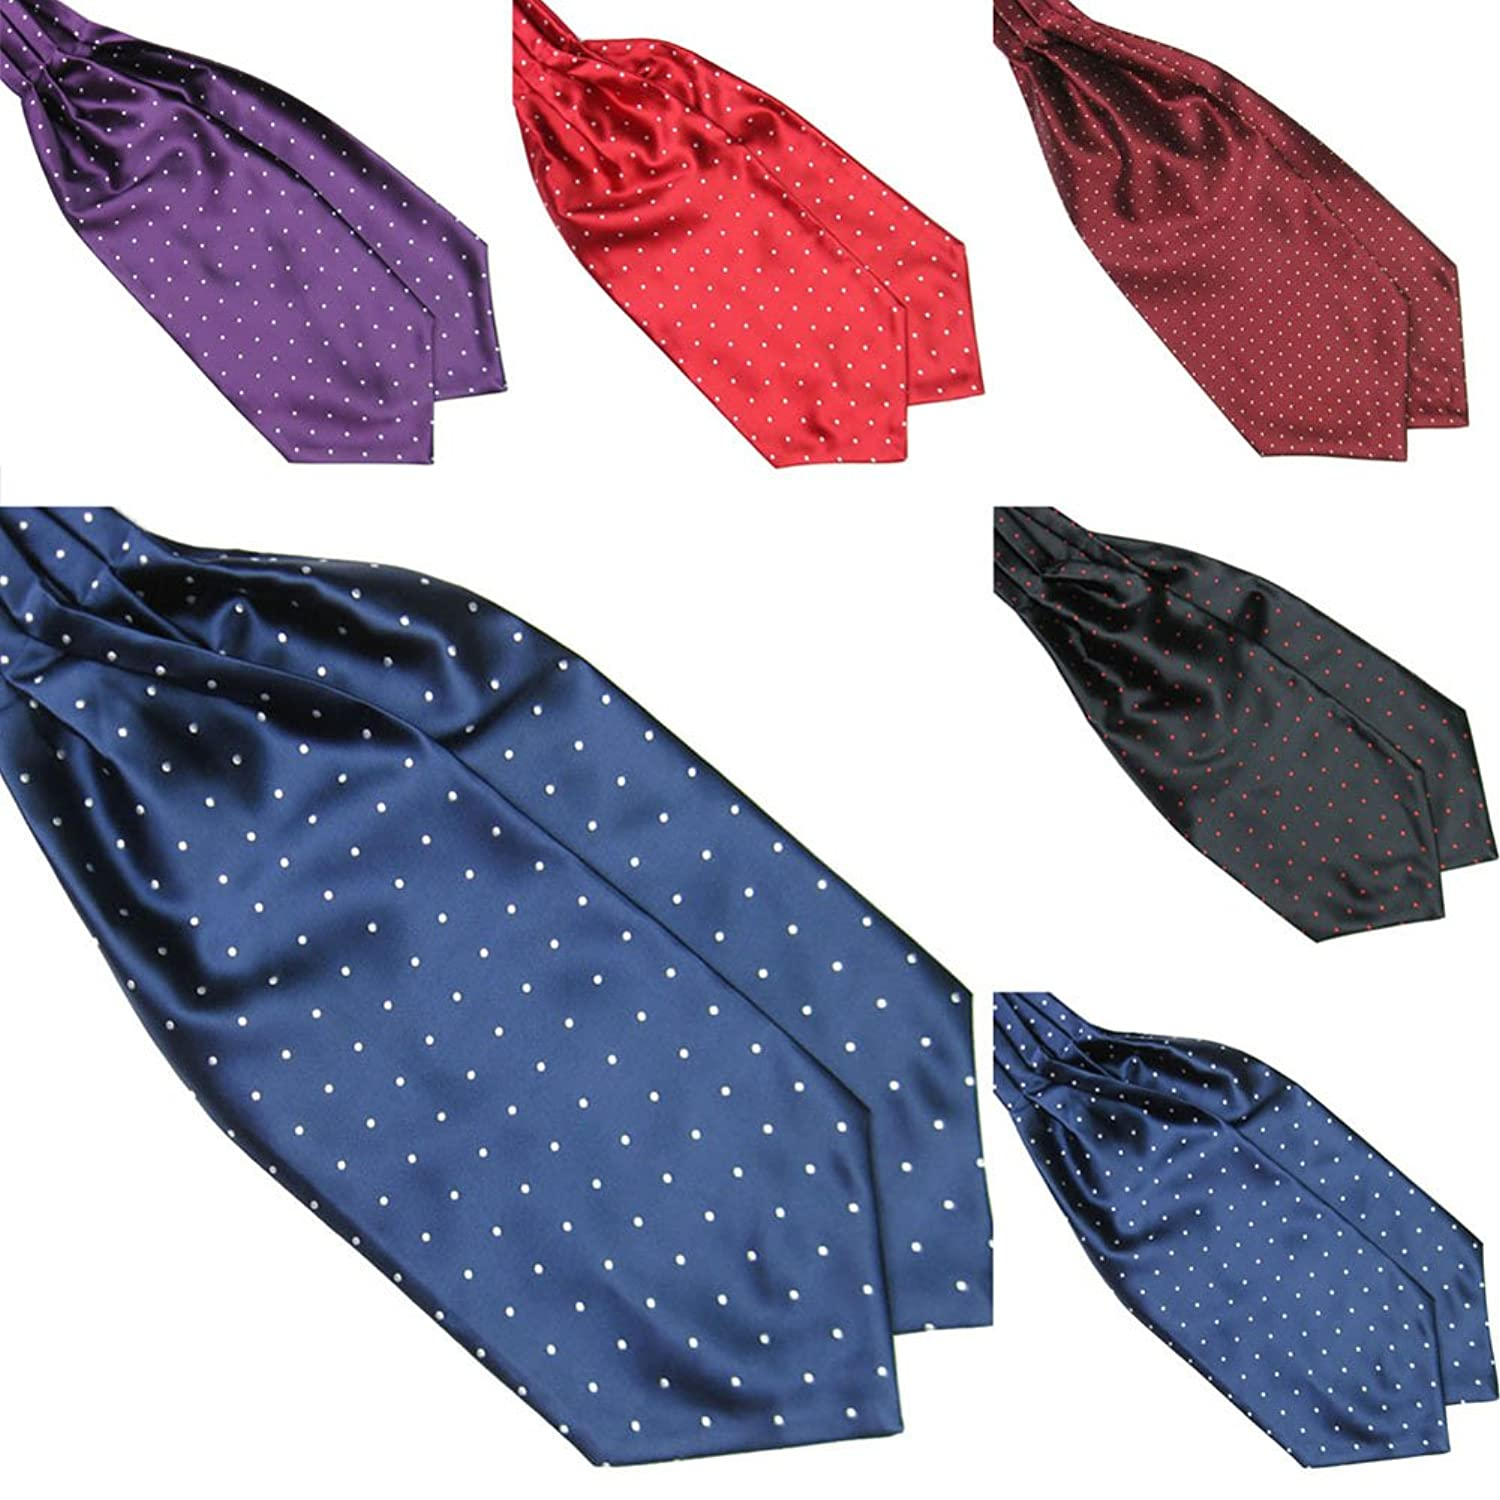 Victorian Mens Ties, Ascot, Cravat, Bow Tie, Necktie Froomer Mens Ascot Blend Polka Dot Ties Silk Cravat $4.99 AT vintagedancer.com